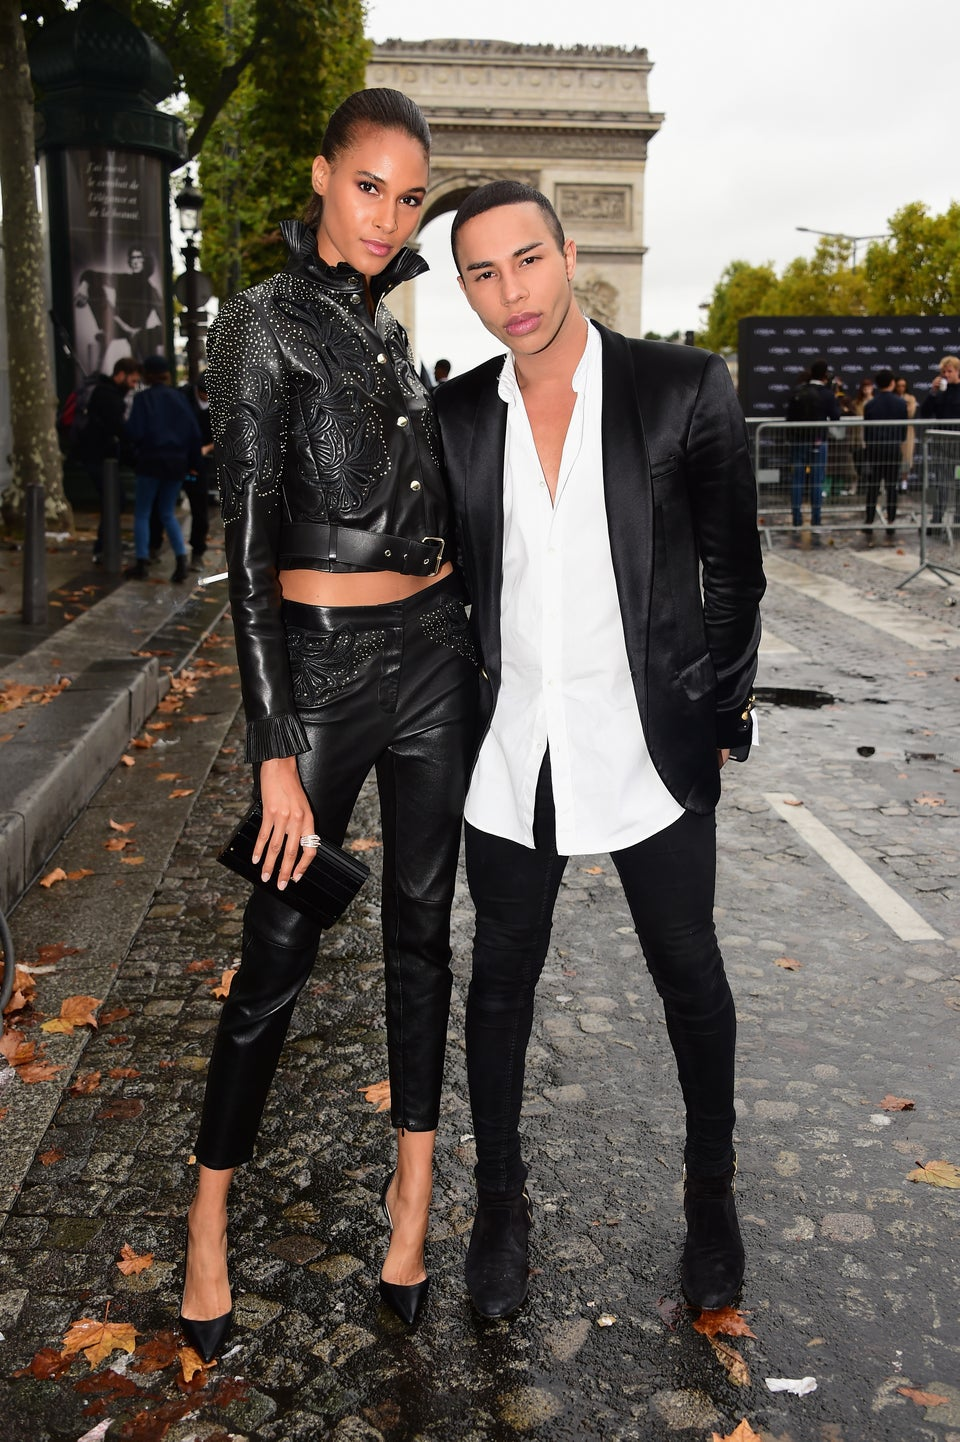 Balmain Is Teaming Up With Victoria's Secret In The Sexiest Collaboration Ever